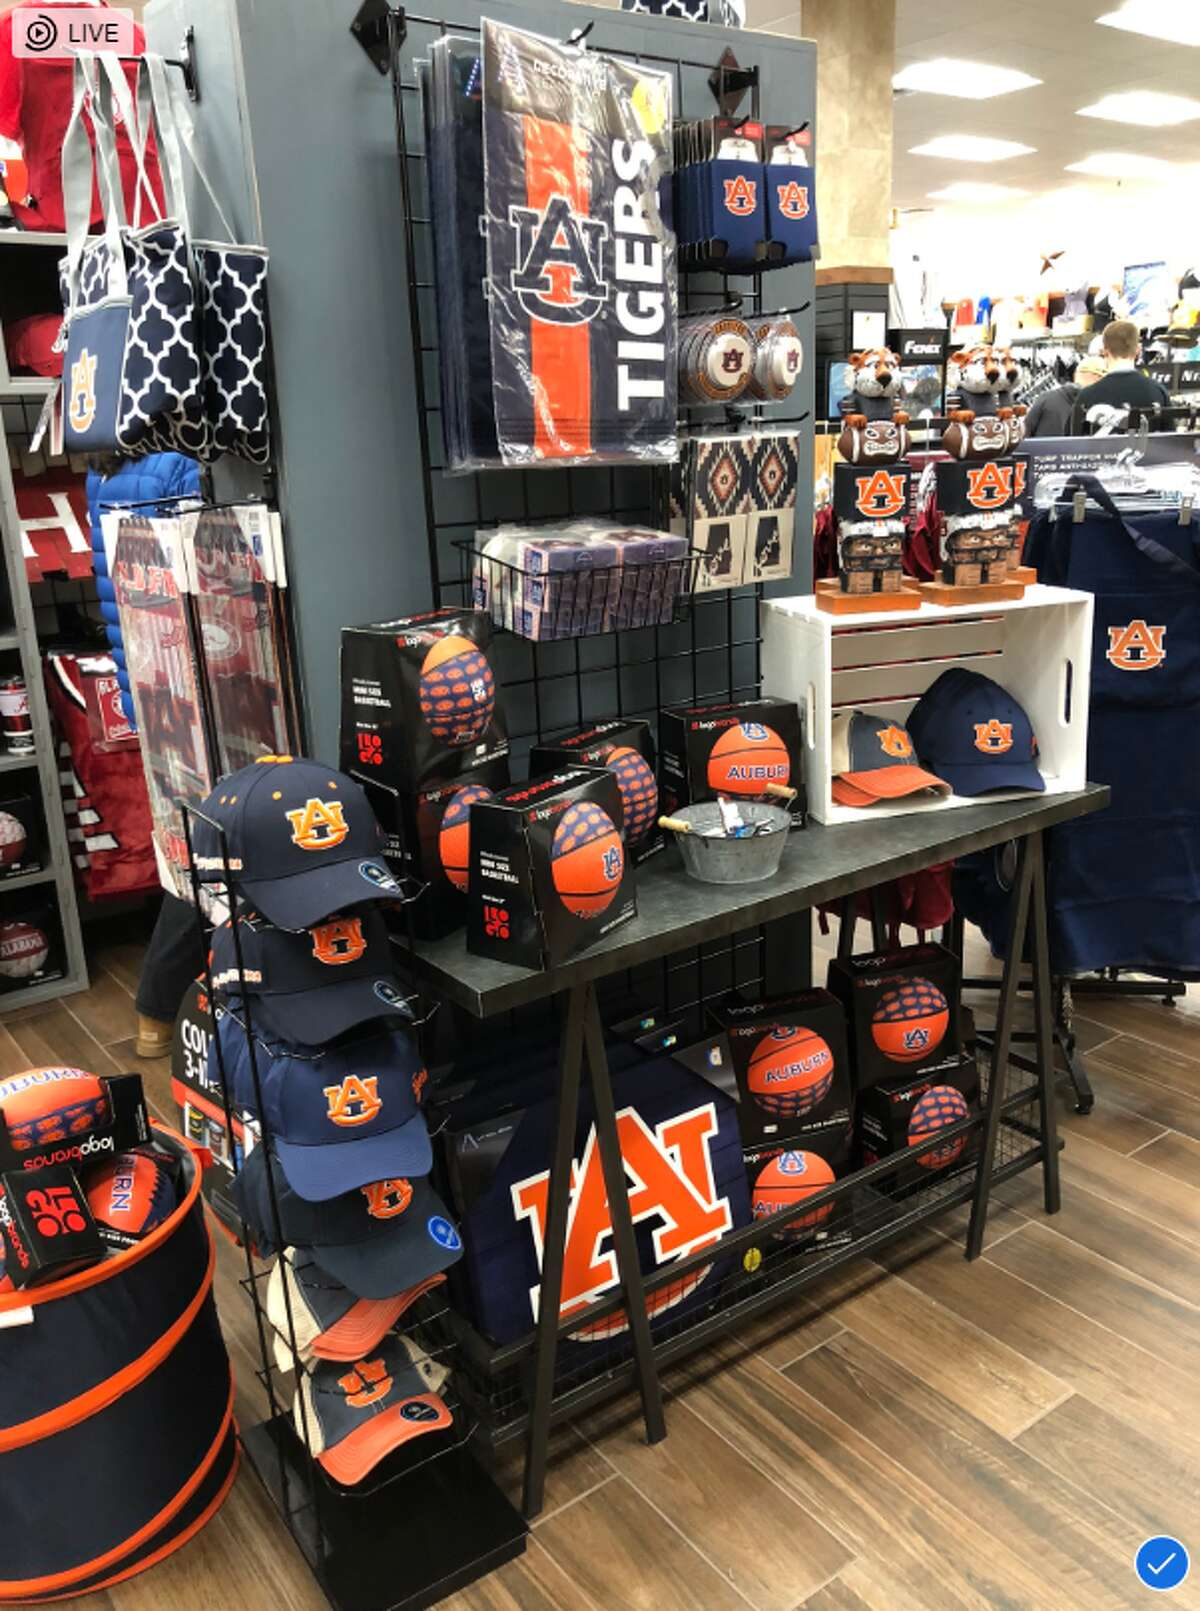 """The new Buc-ee's store in Alabama offers merchandise exclusive to the state, including Buc-ee's """"Beach Express"""" shirts and Crimson Tide gear."""